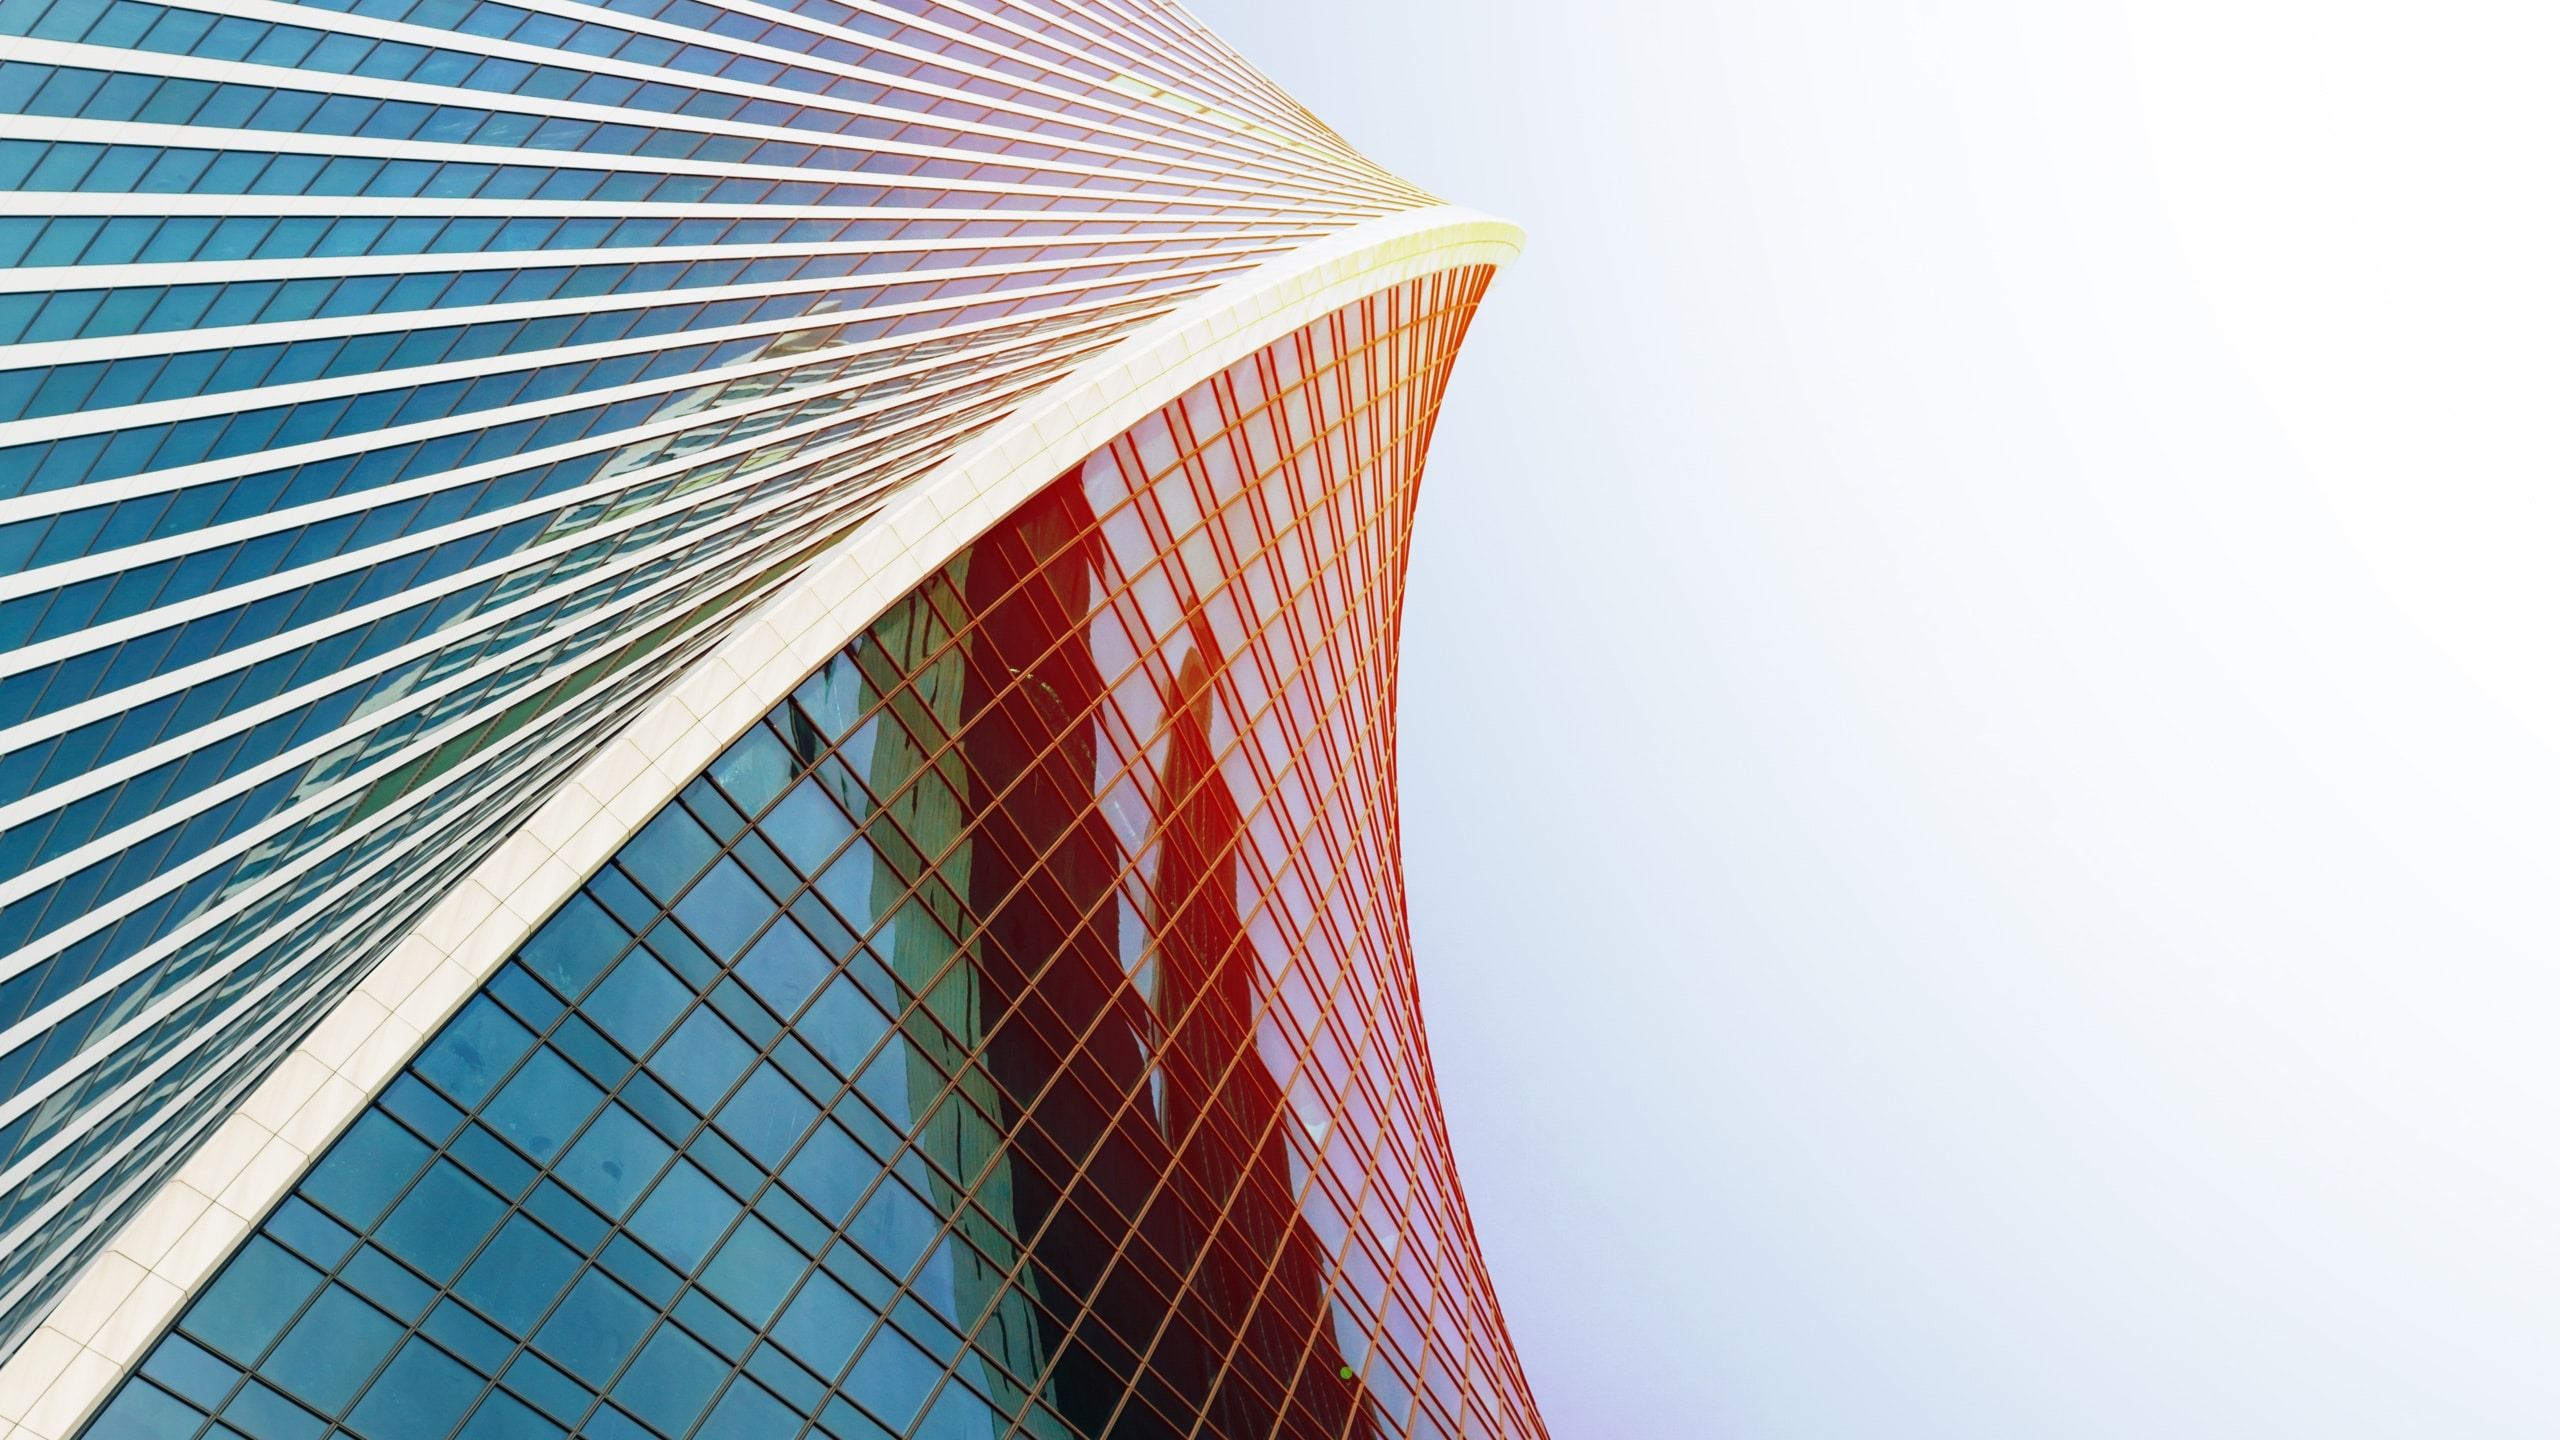 View looking up at a curved skyscraper.